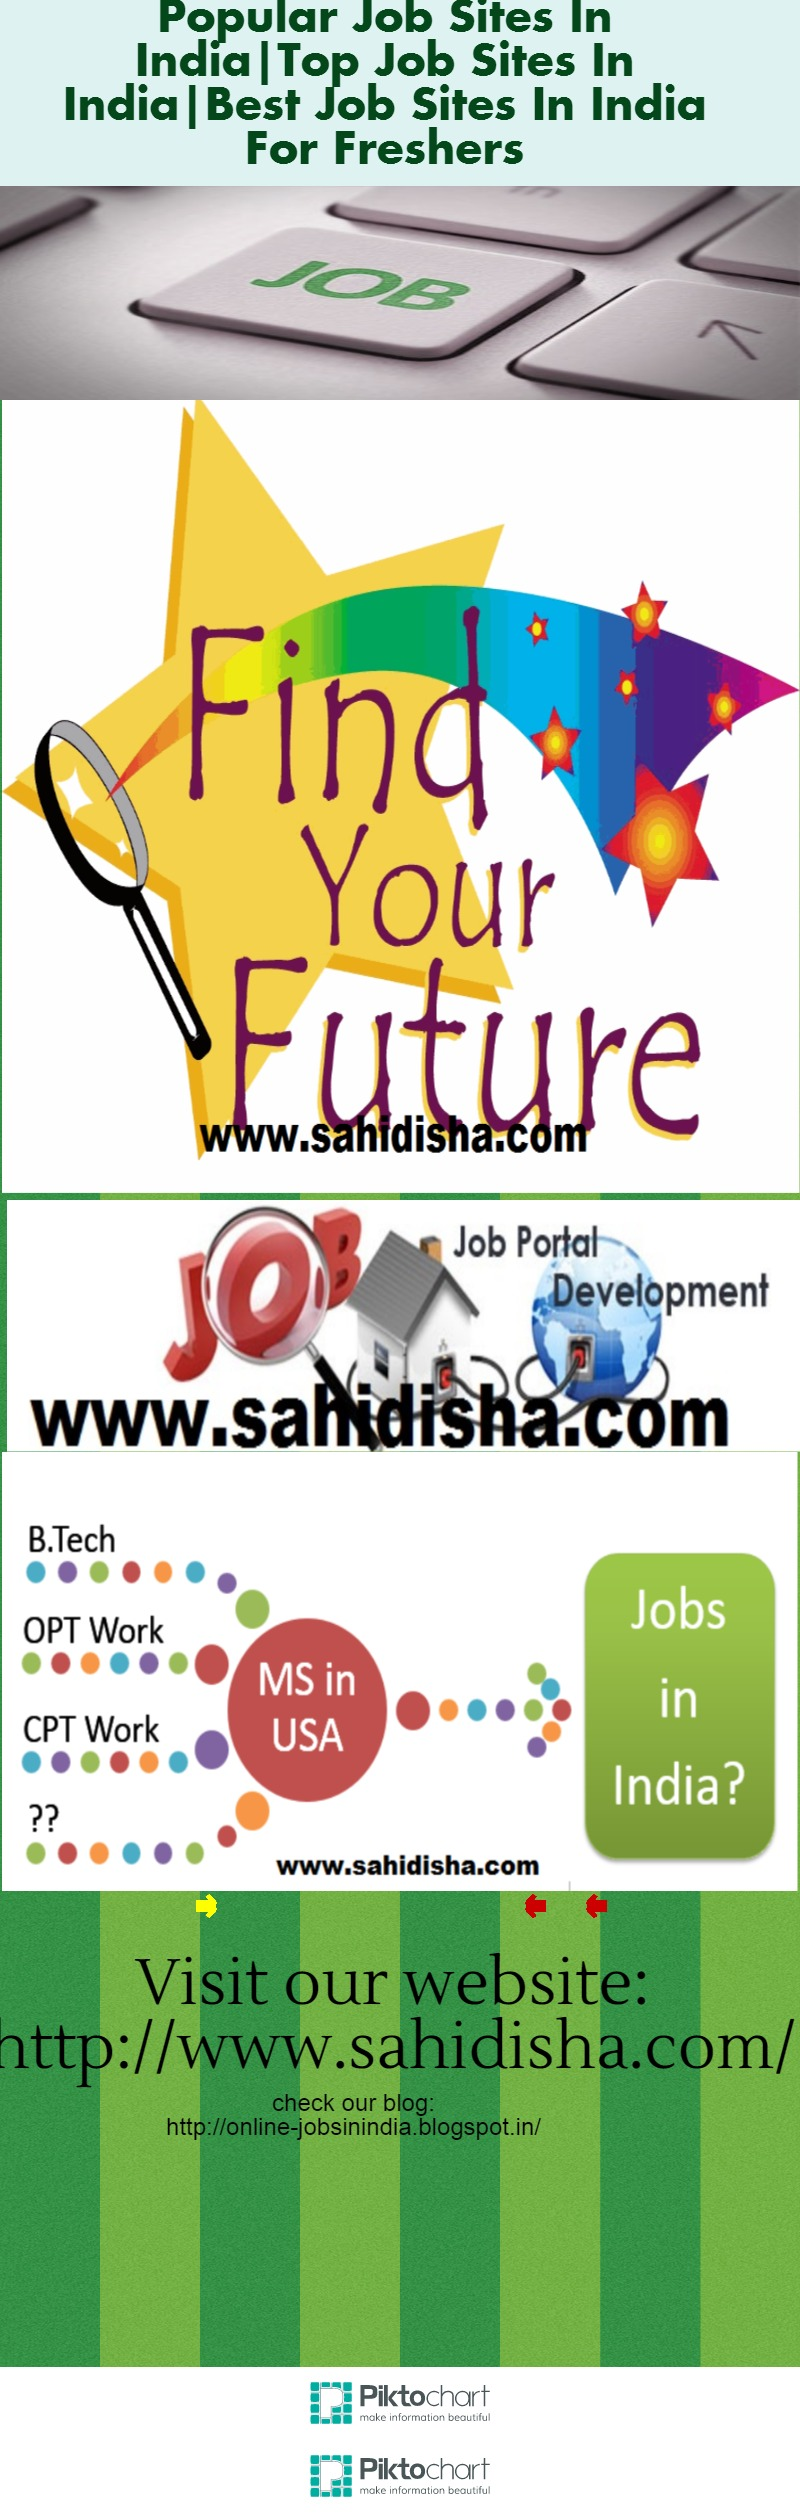 popular job sites in top job sites in best job sites popular job sites in top job sites in best job sites in for freshers ly